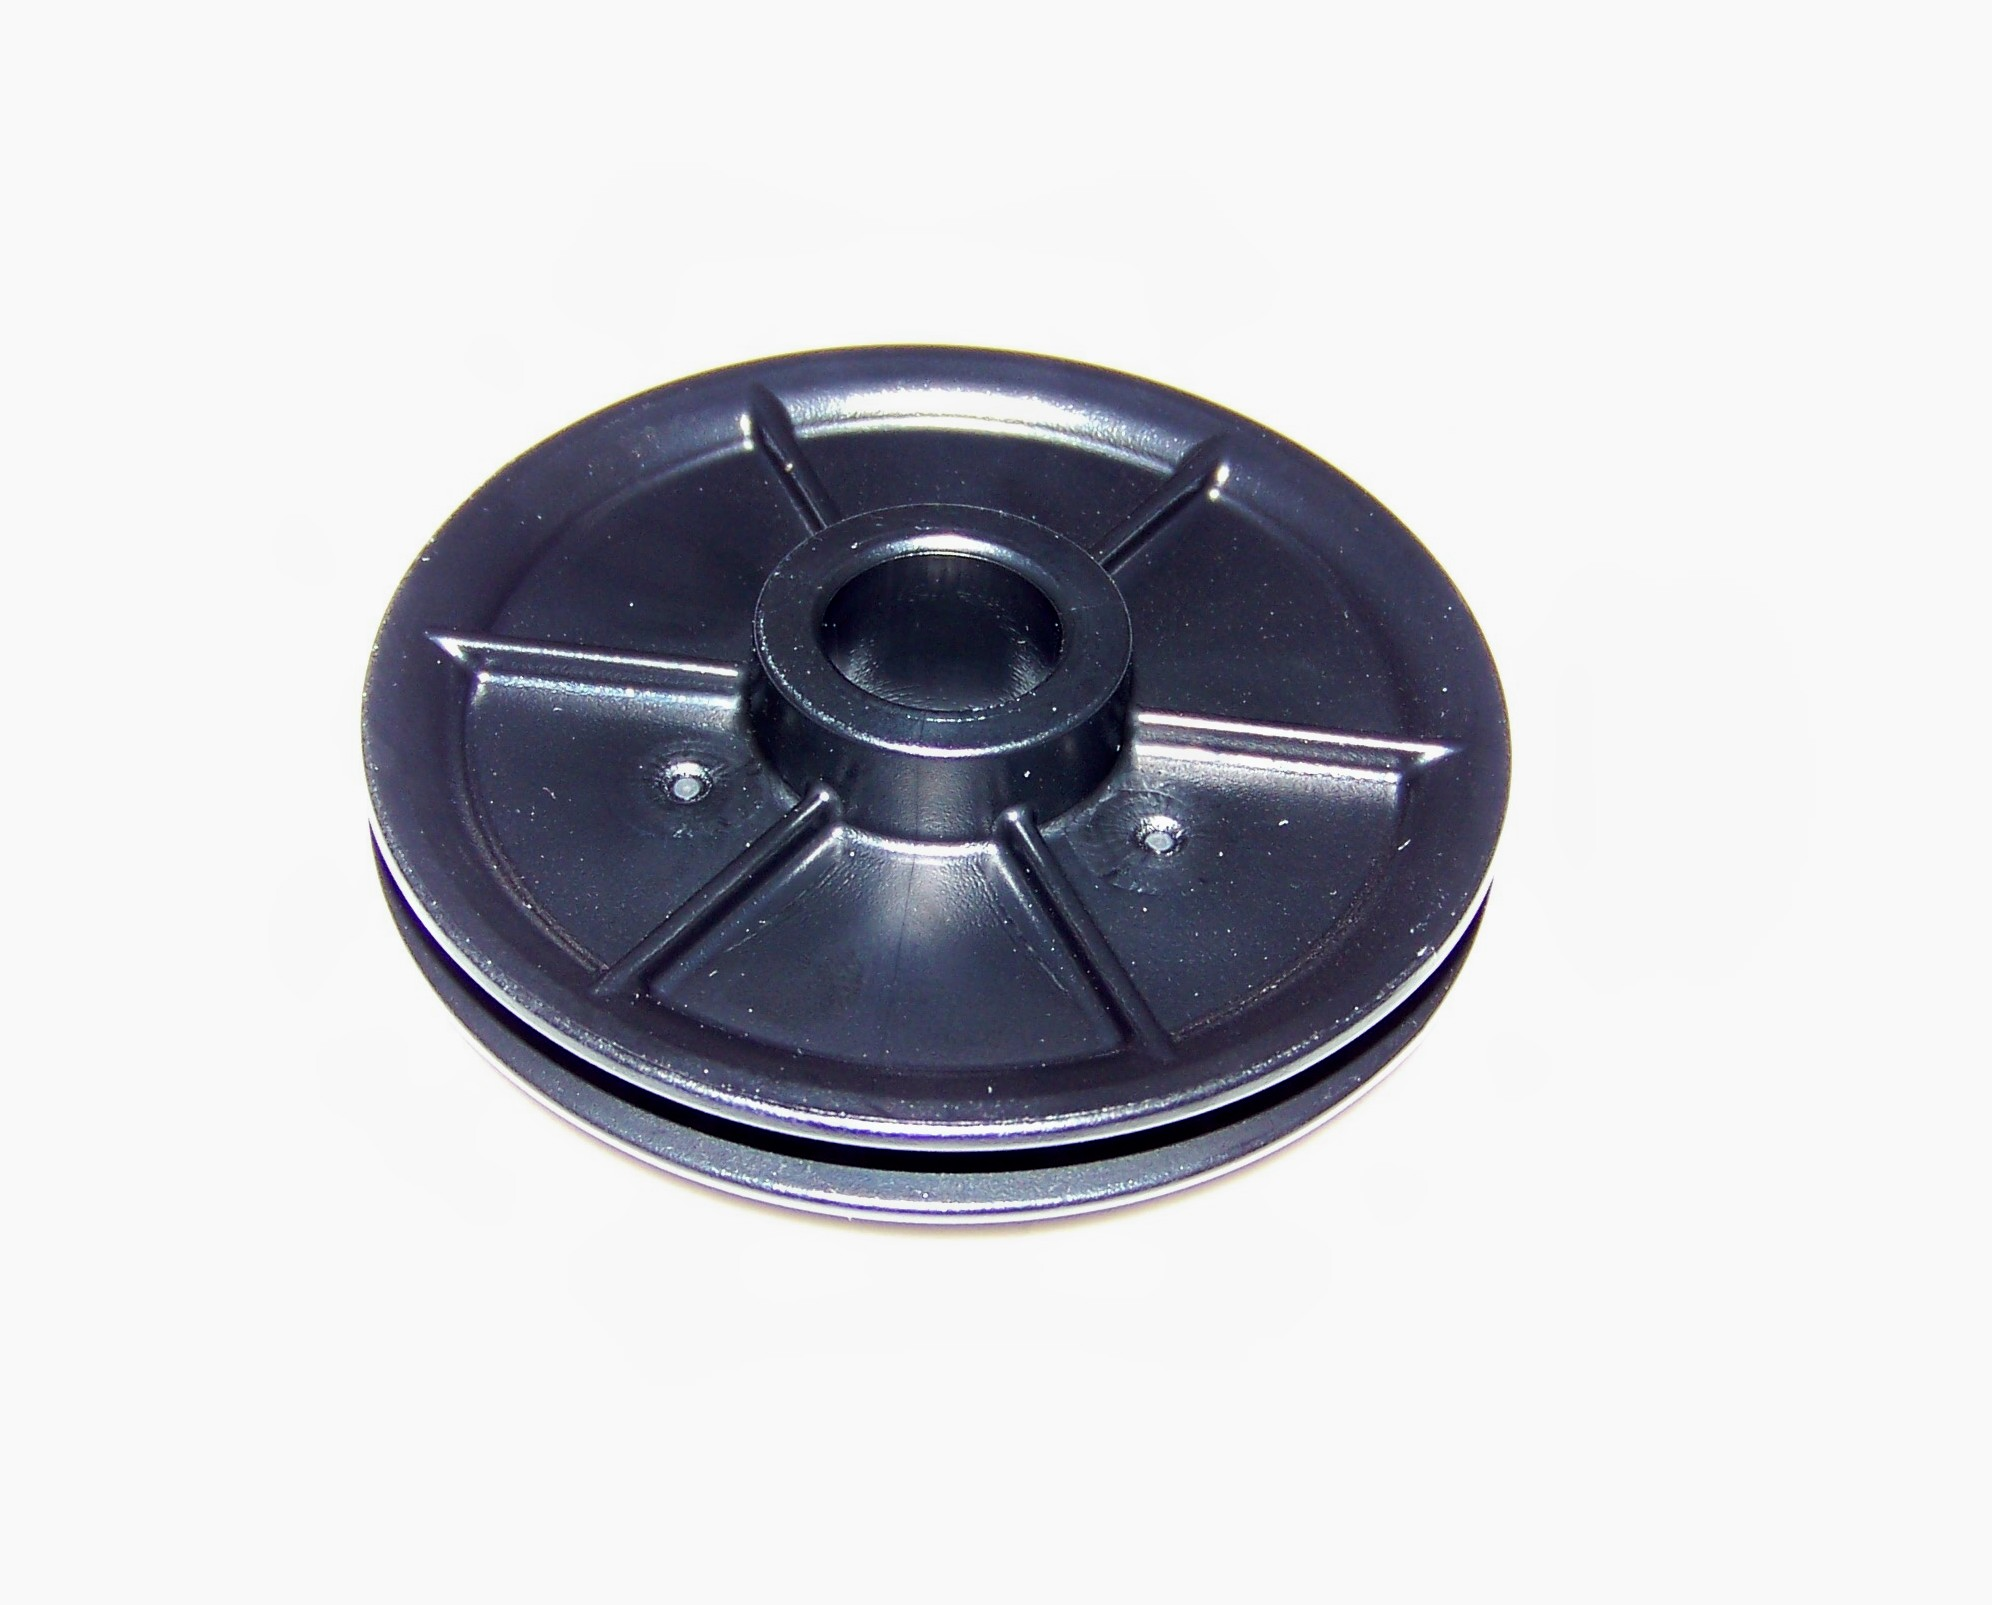 144c56 Idler Pulley